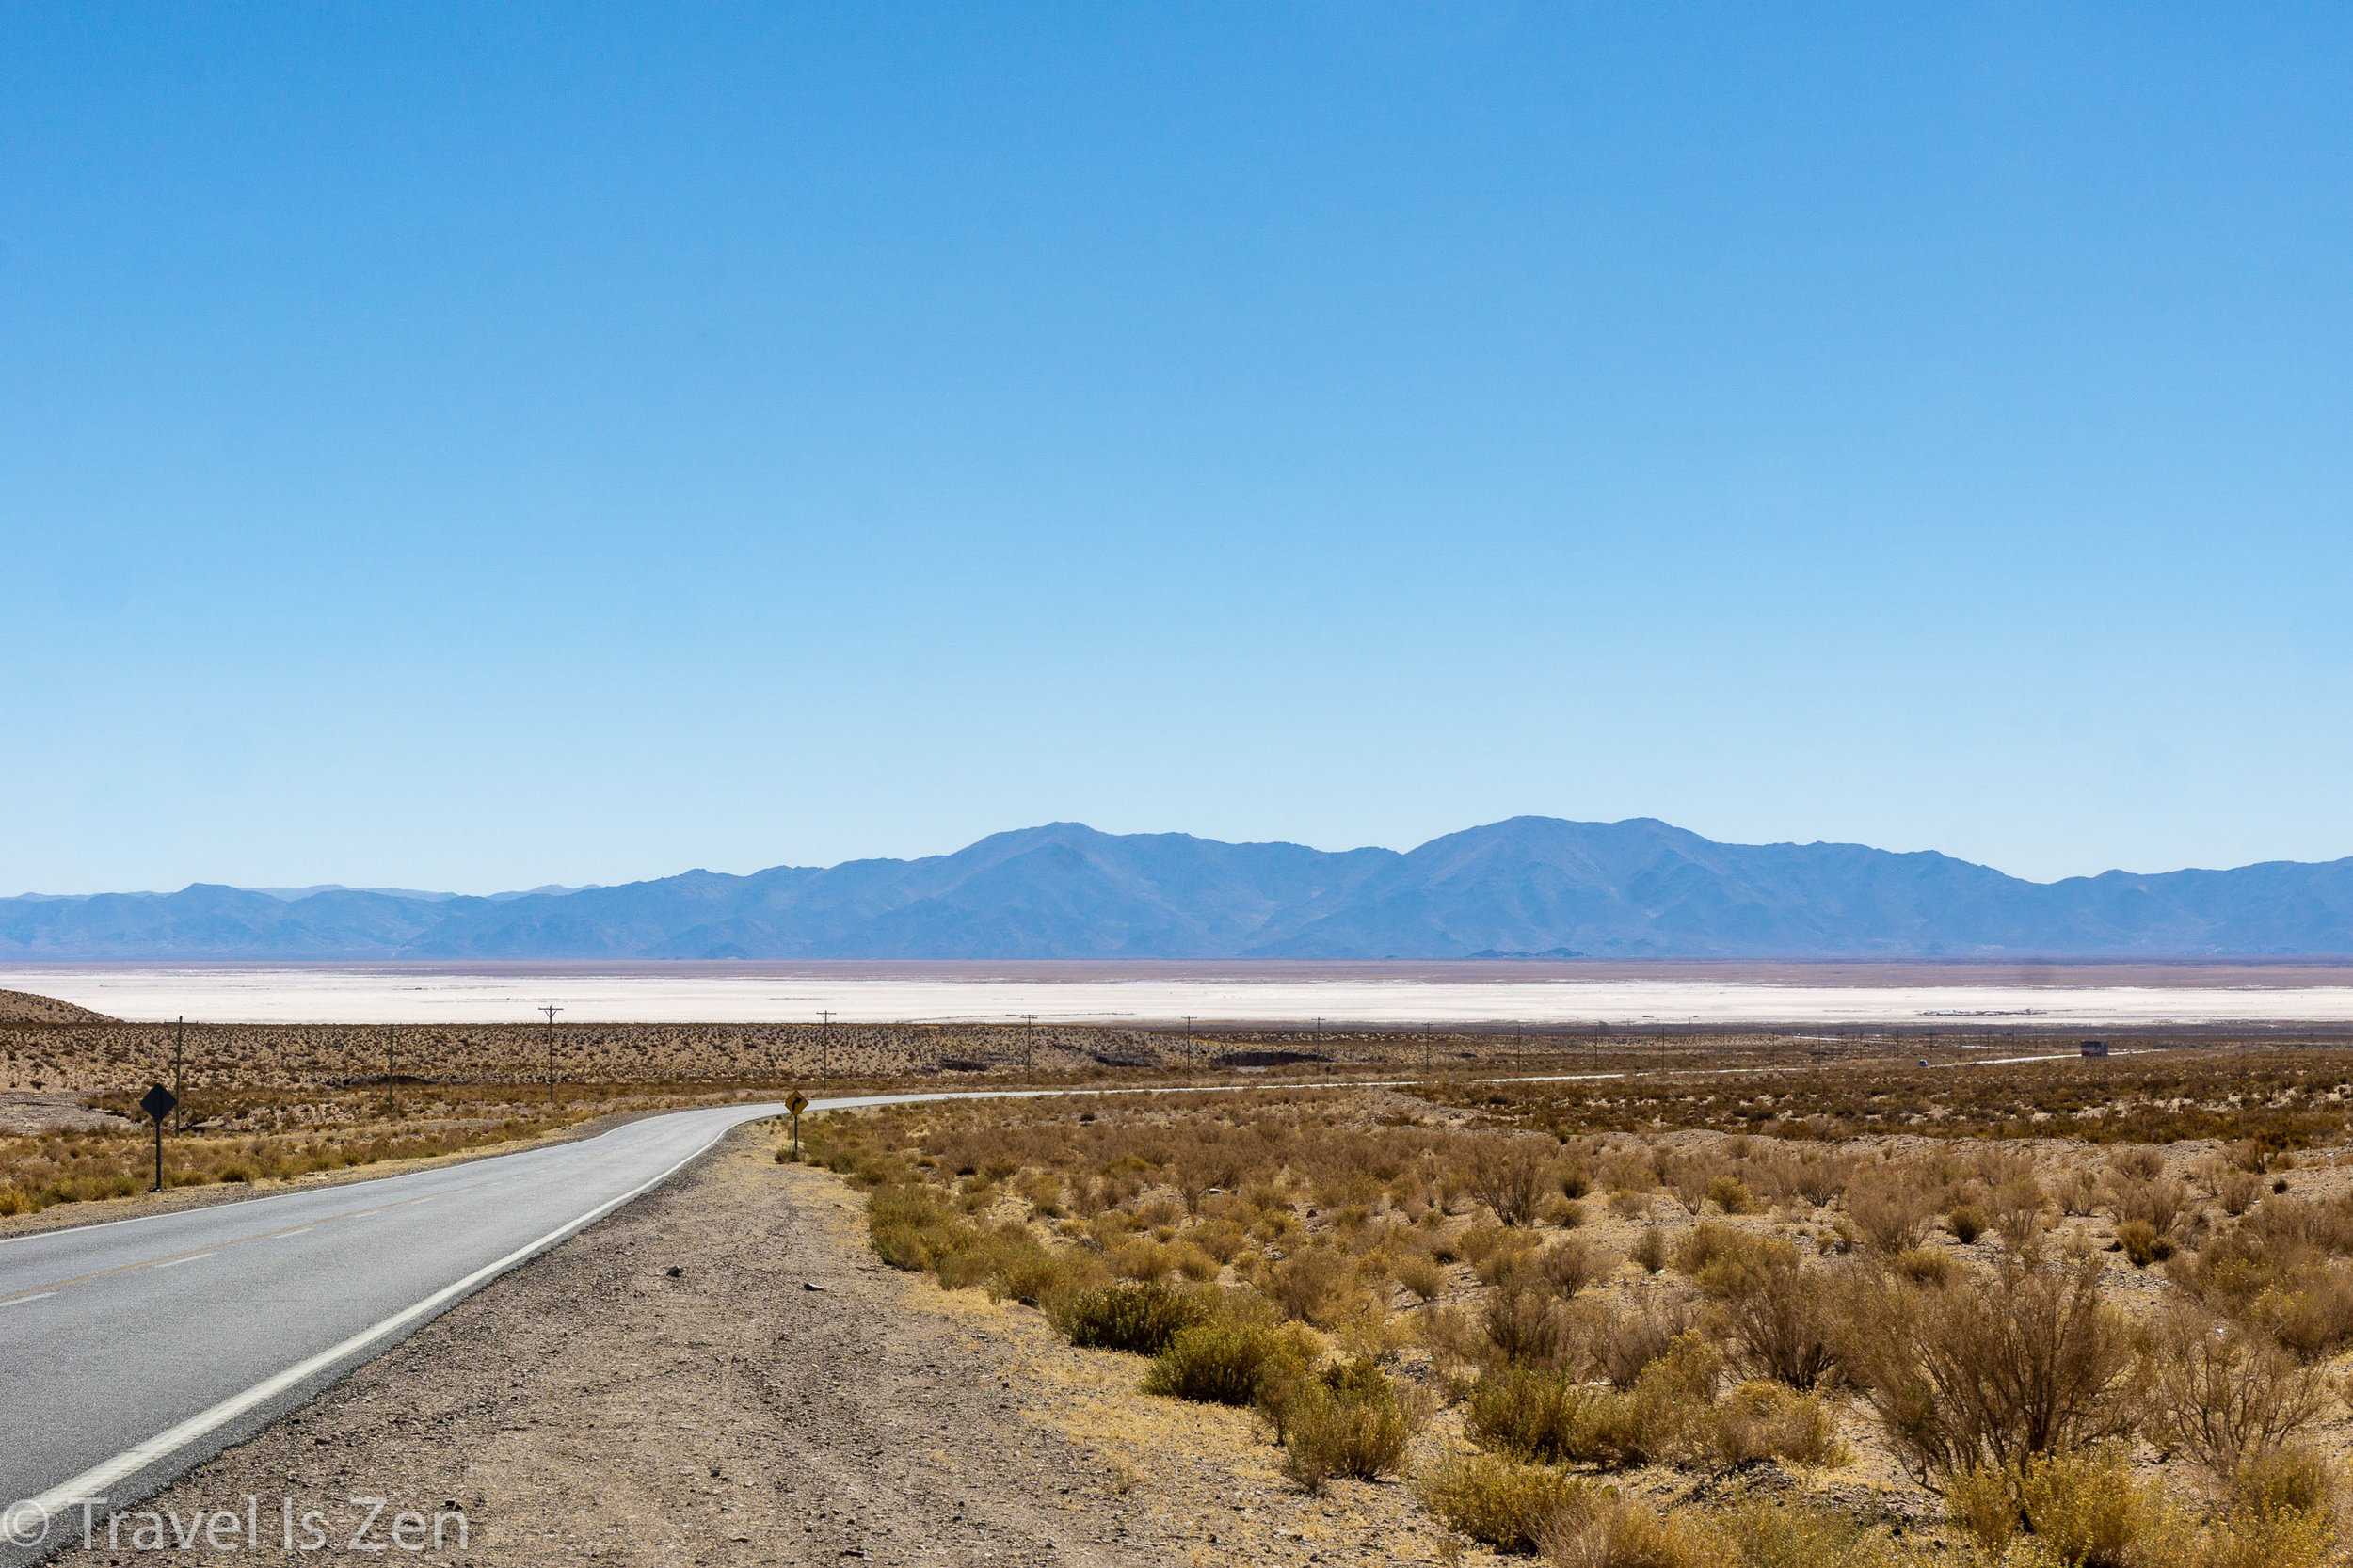 Salt Flats shimmering in the far distance, Route 52